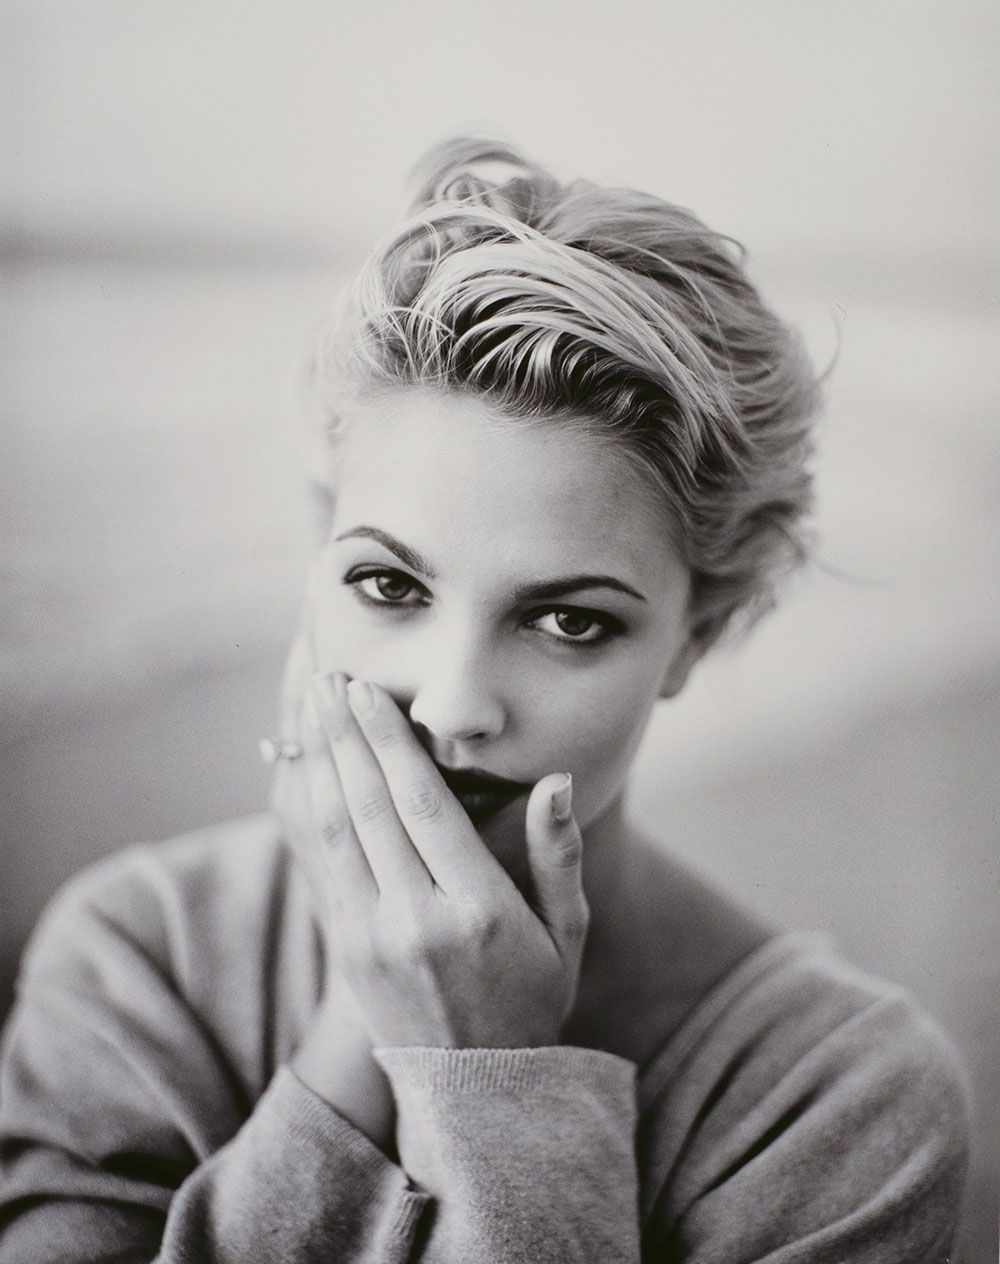 Drew Barrymore 1990S Black And White | Short Bobs In 2018 throughout Drew Barrymore Short Haircuts